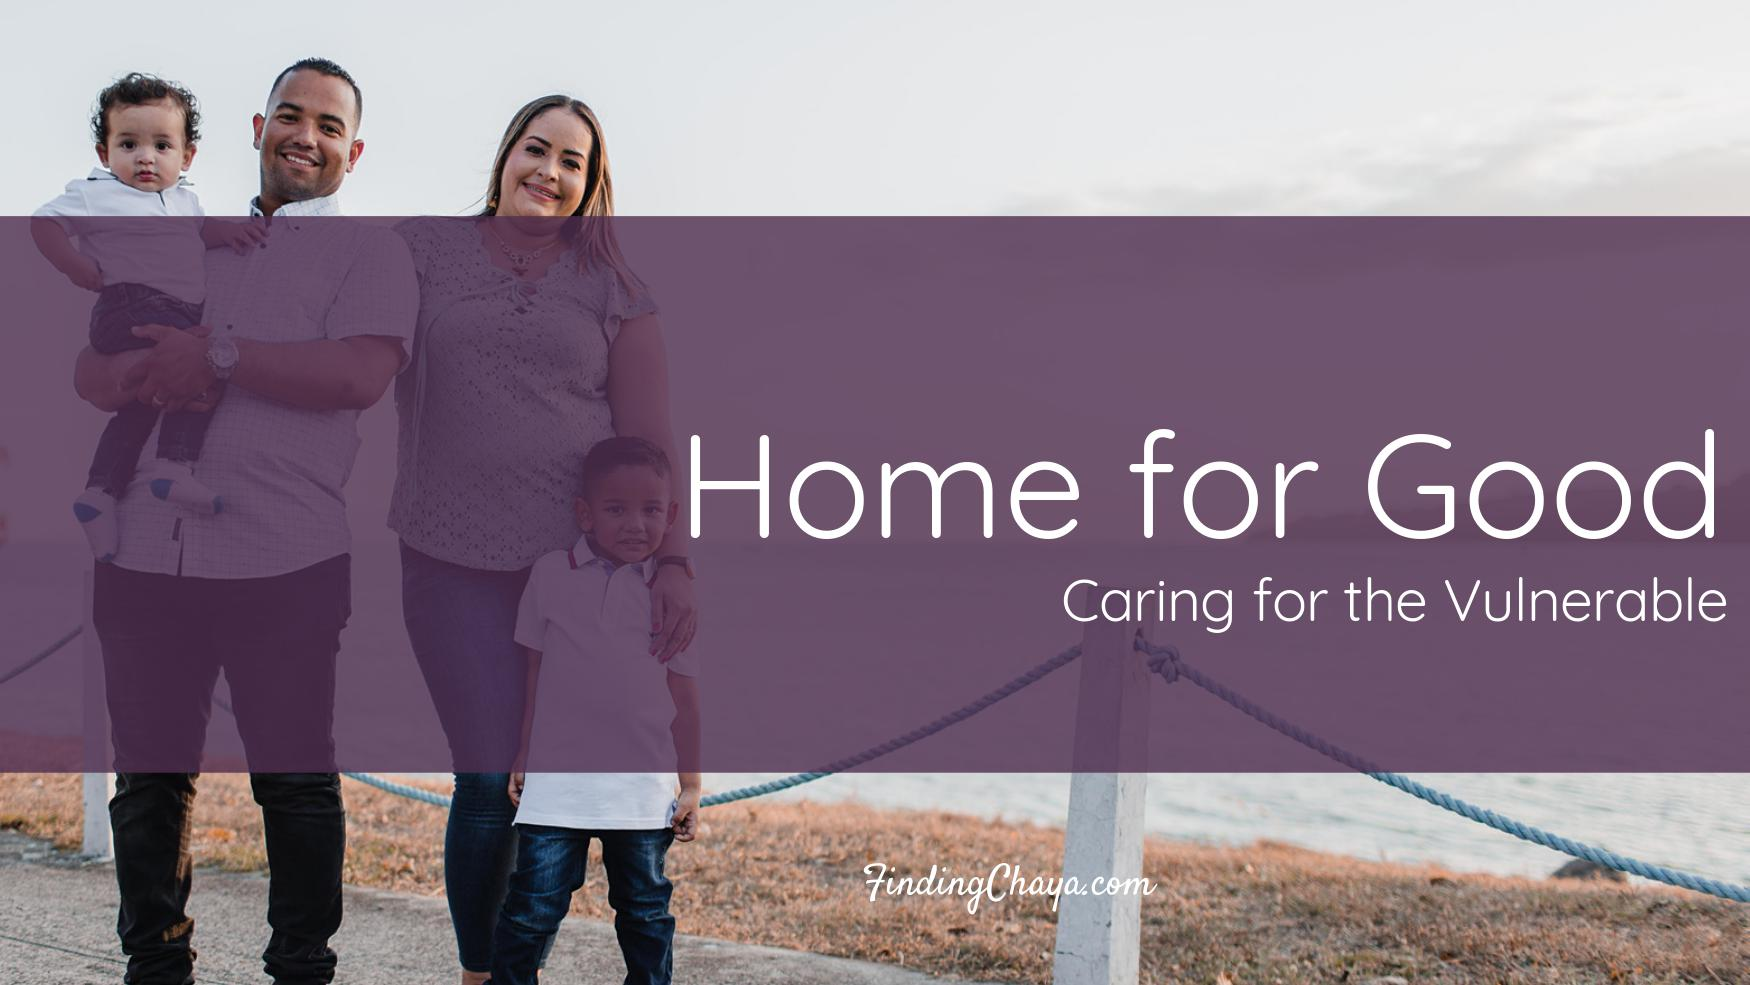 Introducing Home for Good